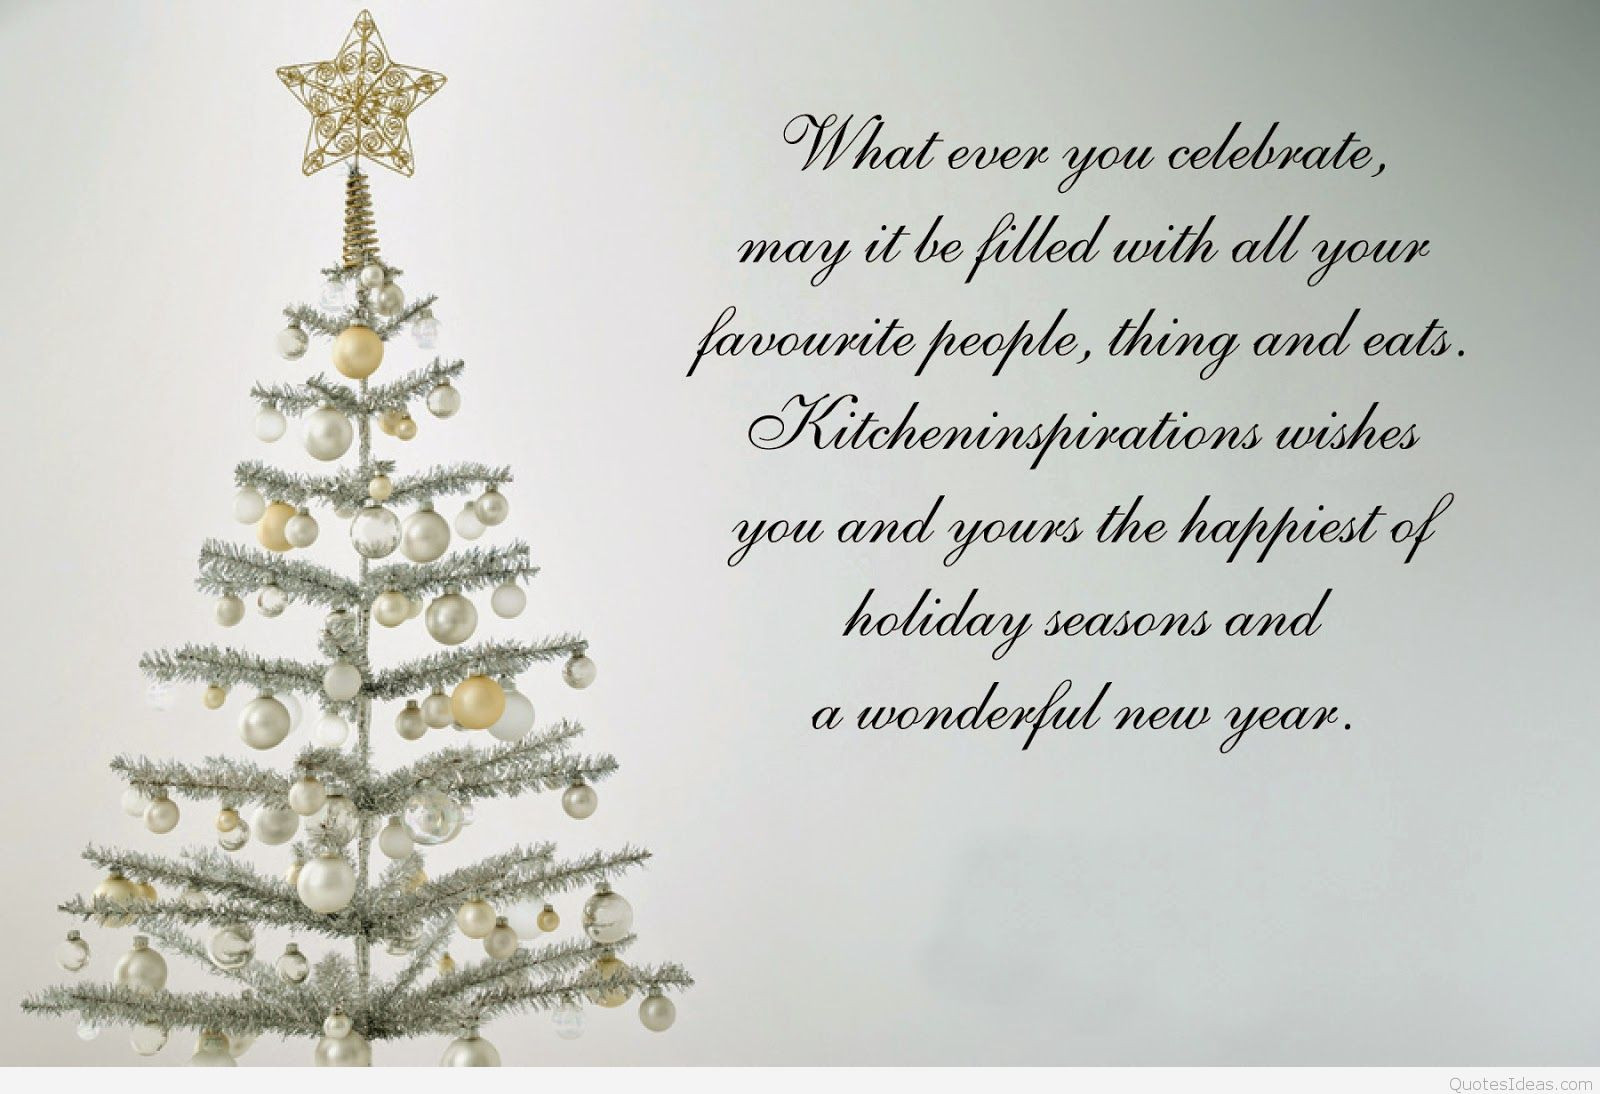 Christmas Quotes And Sayings  quote eve Christmas